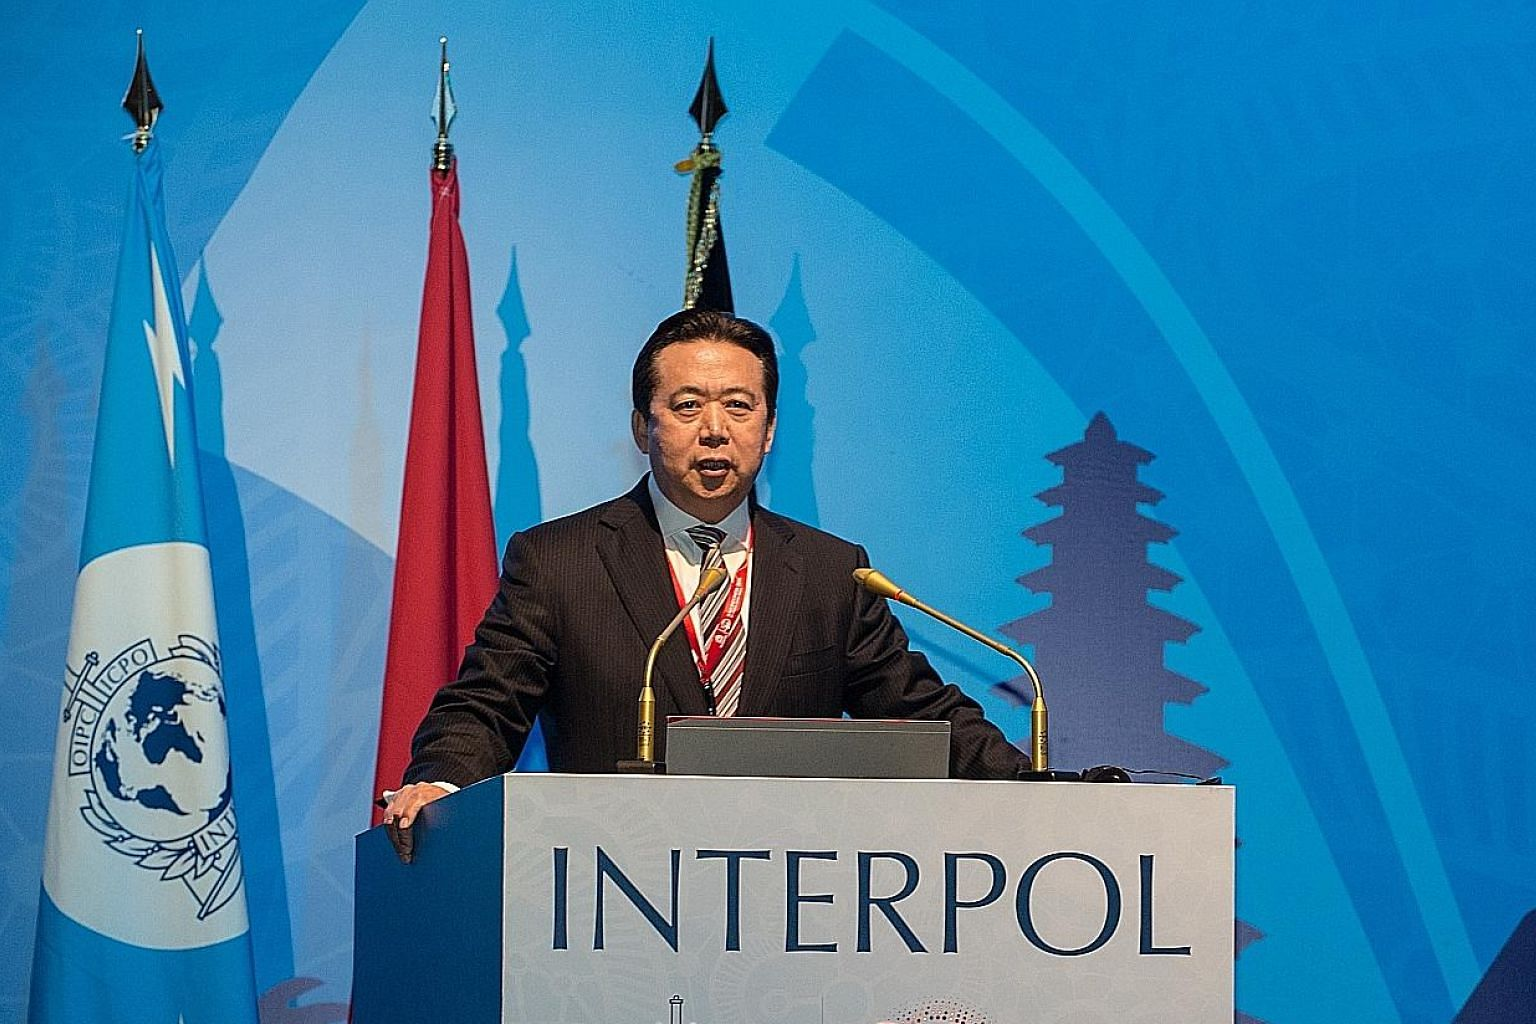 China's Vice-Minister for Public Security Meng Hongwei was picked to take the helm of the global police cooperation agency for a four-year term.